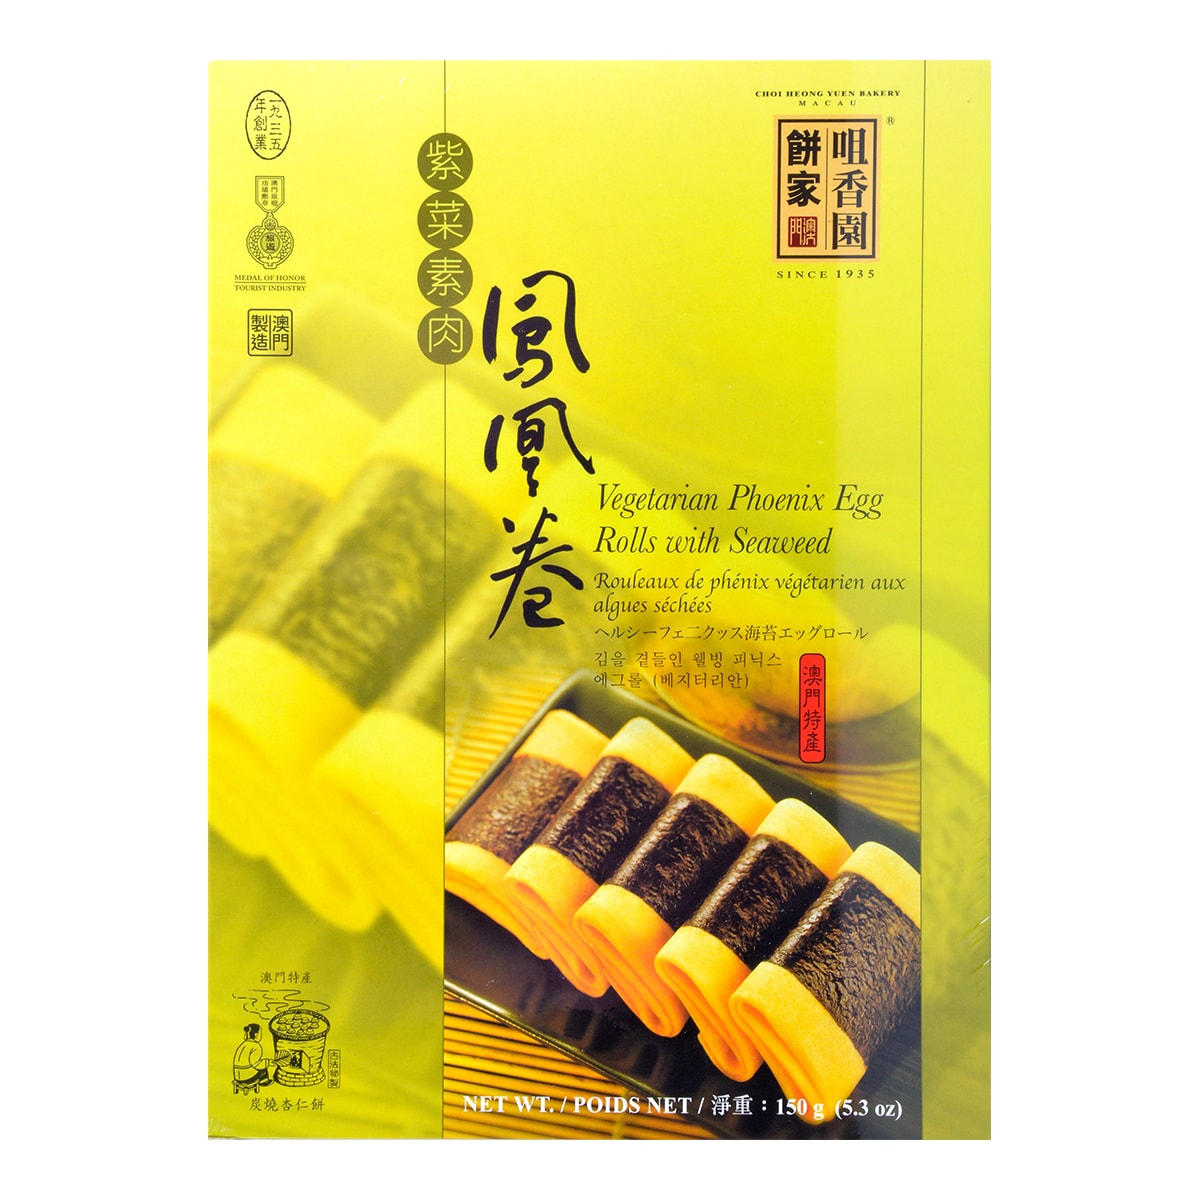 CHIO HEONG YUEN Vegetarian Phoenix Egg Roll With Seaweed 150g